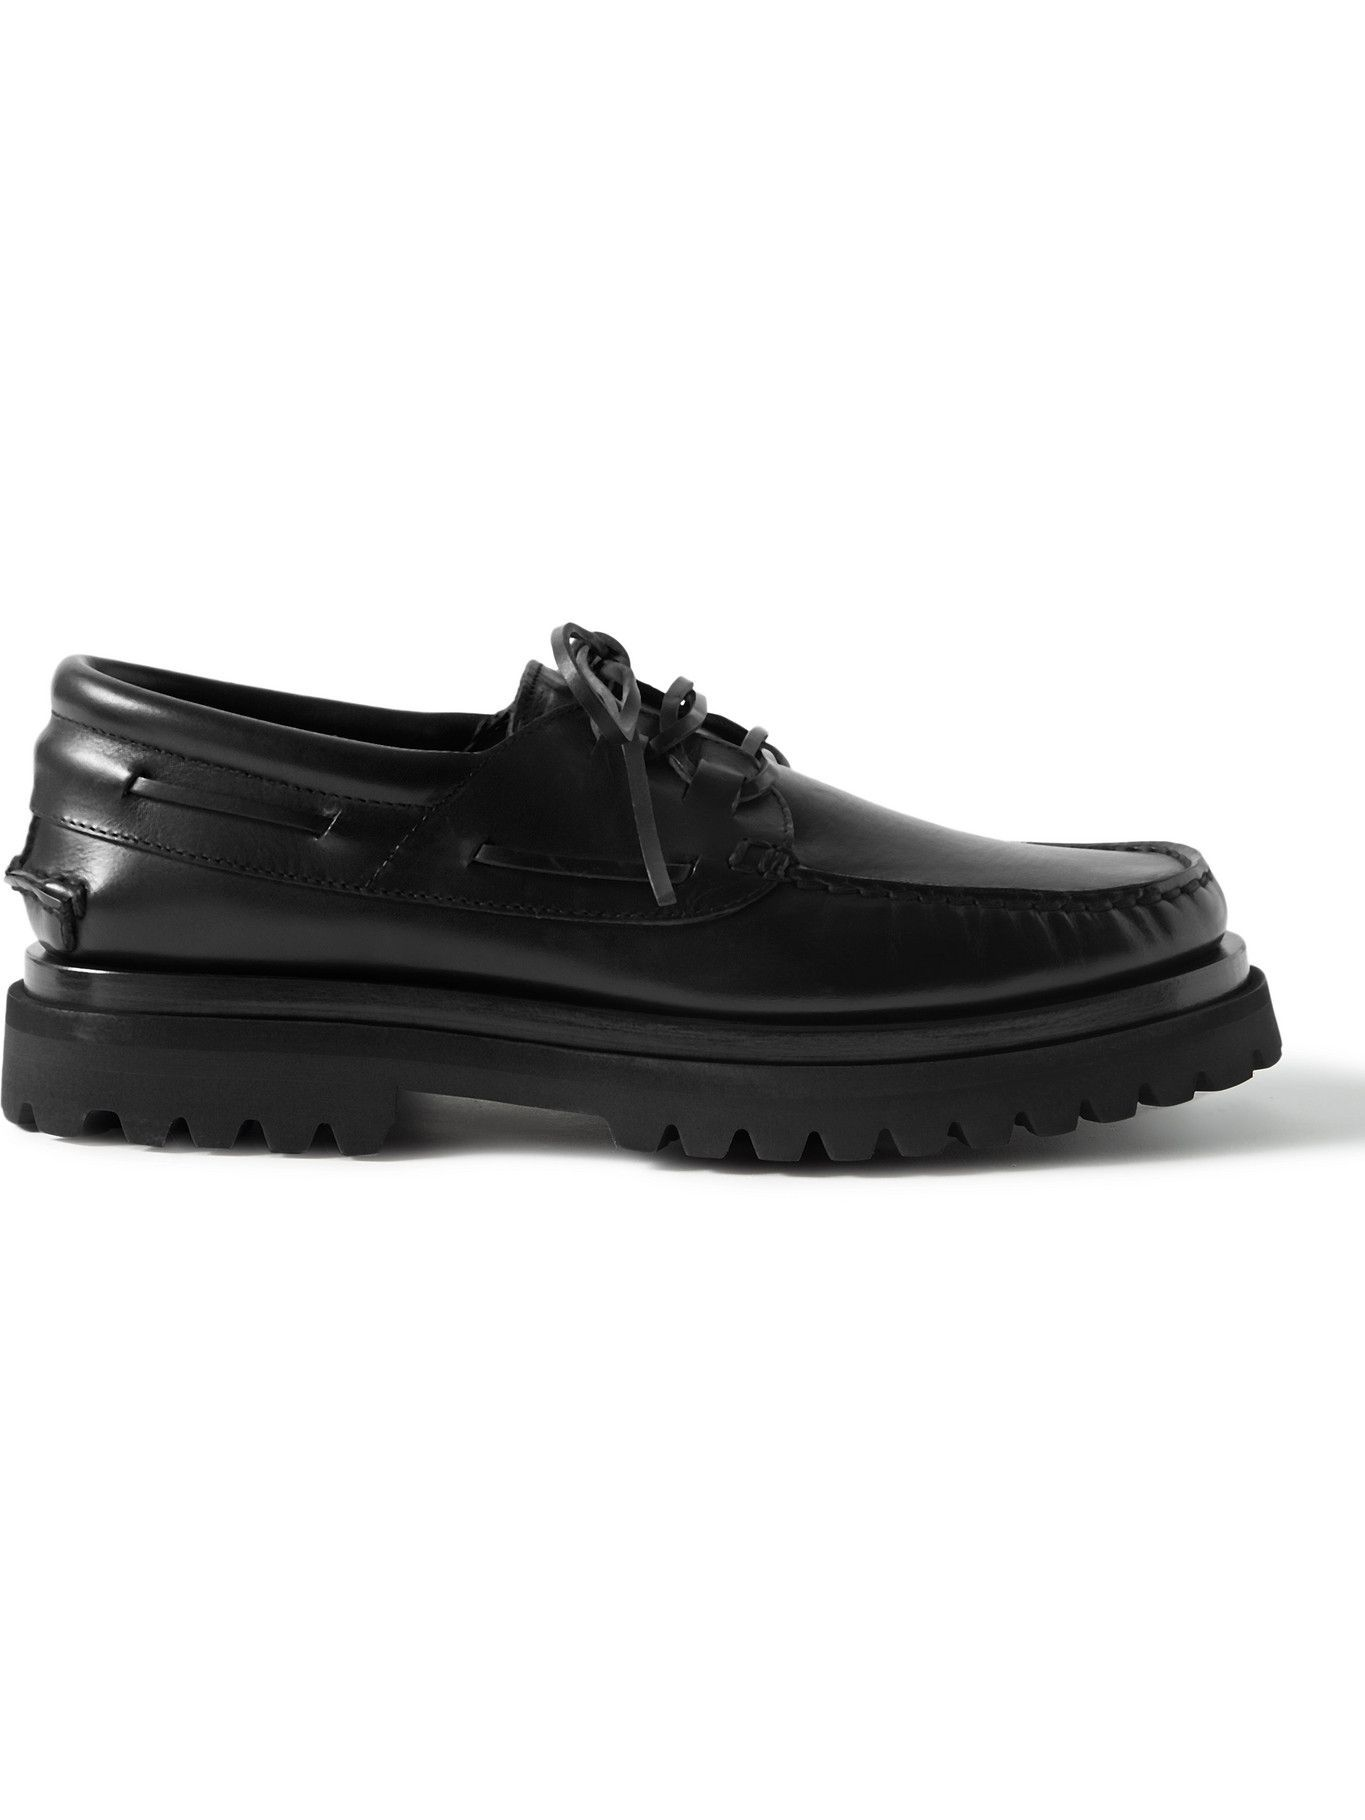 Photo: OFFICINE CREATIVE - Heritage Leather Boat Shoes - Black